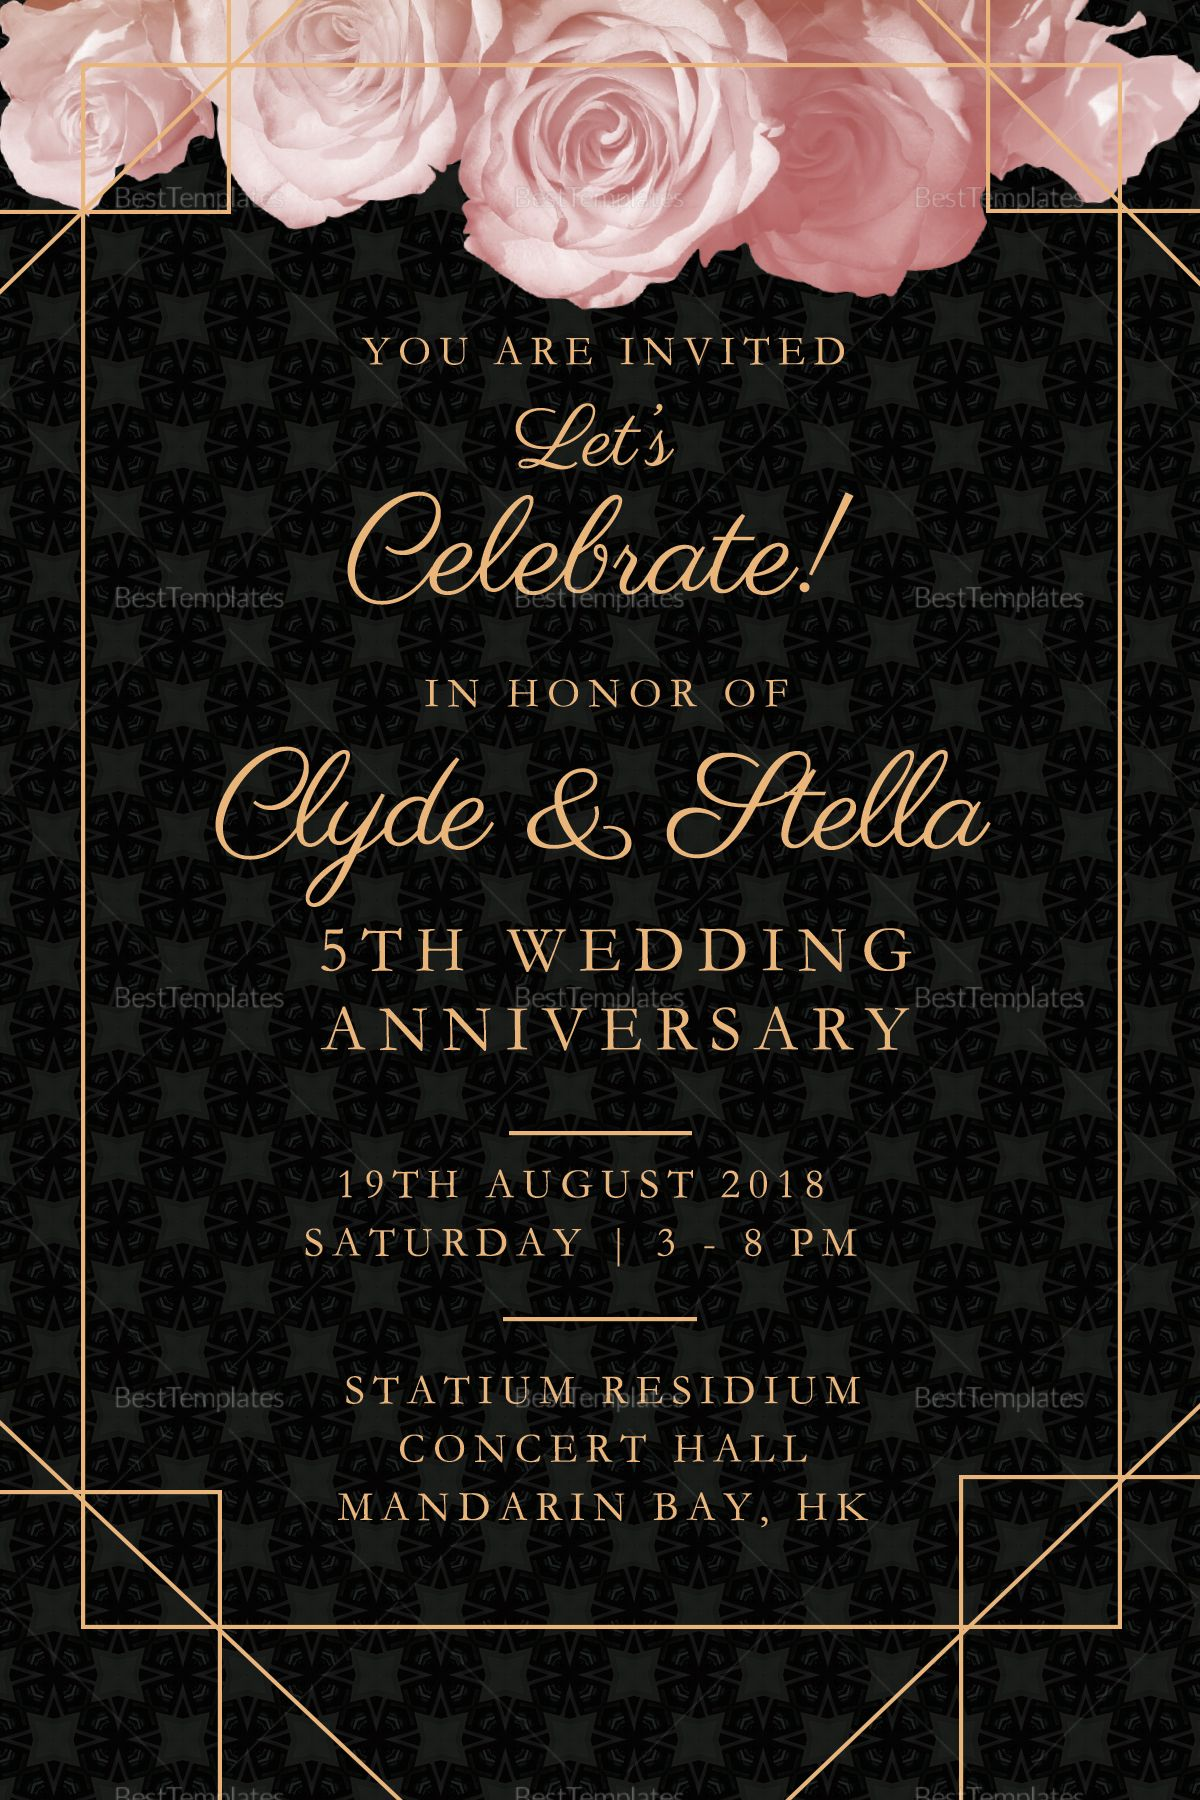 Elegant Invitation Templates  Wedding anniversary invitations